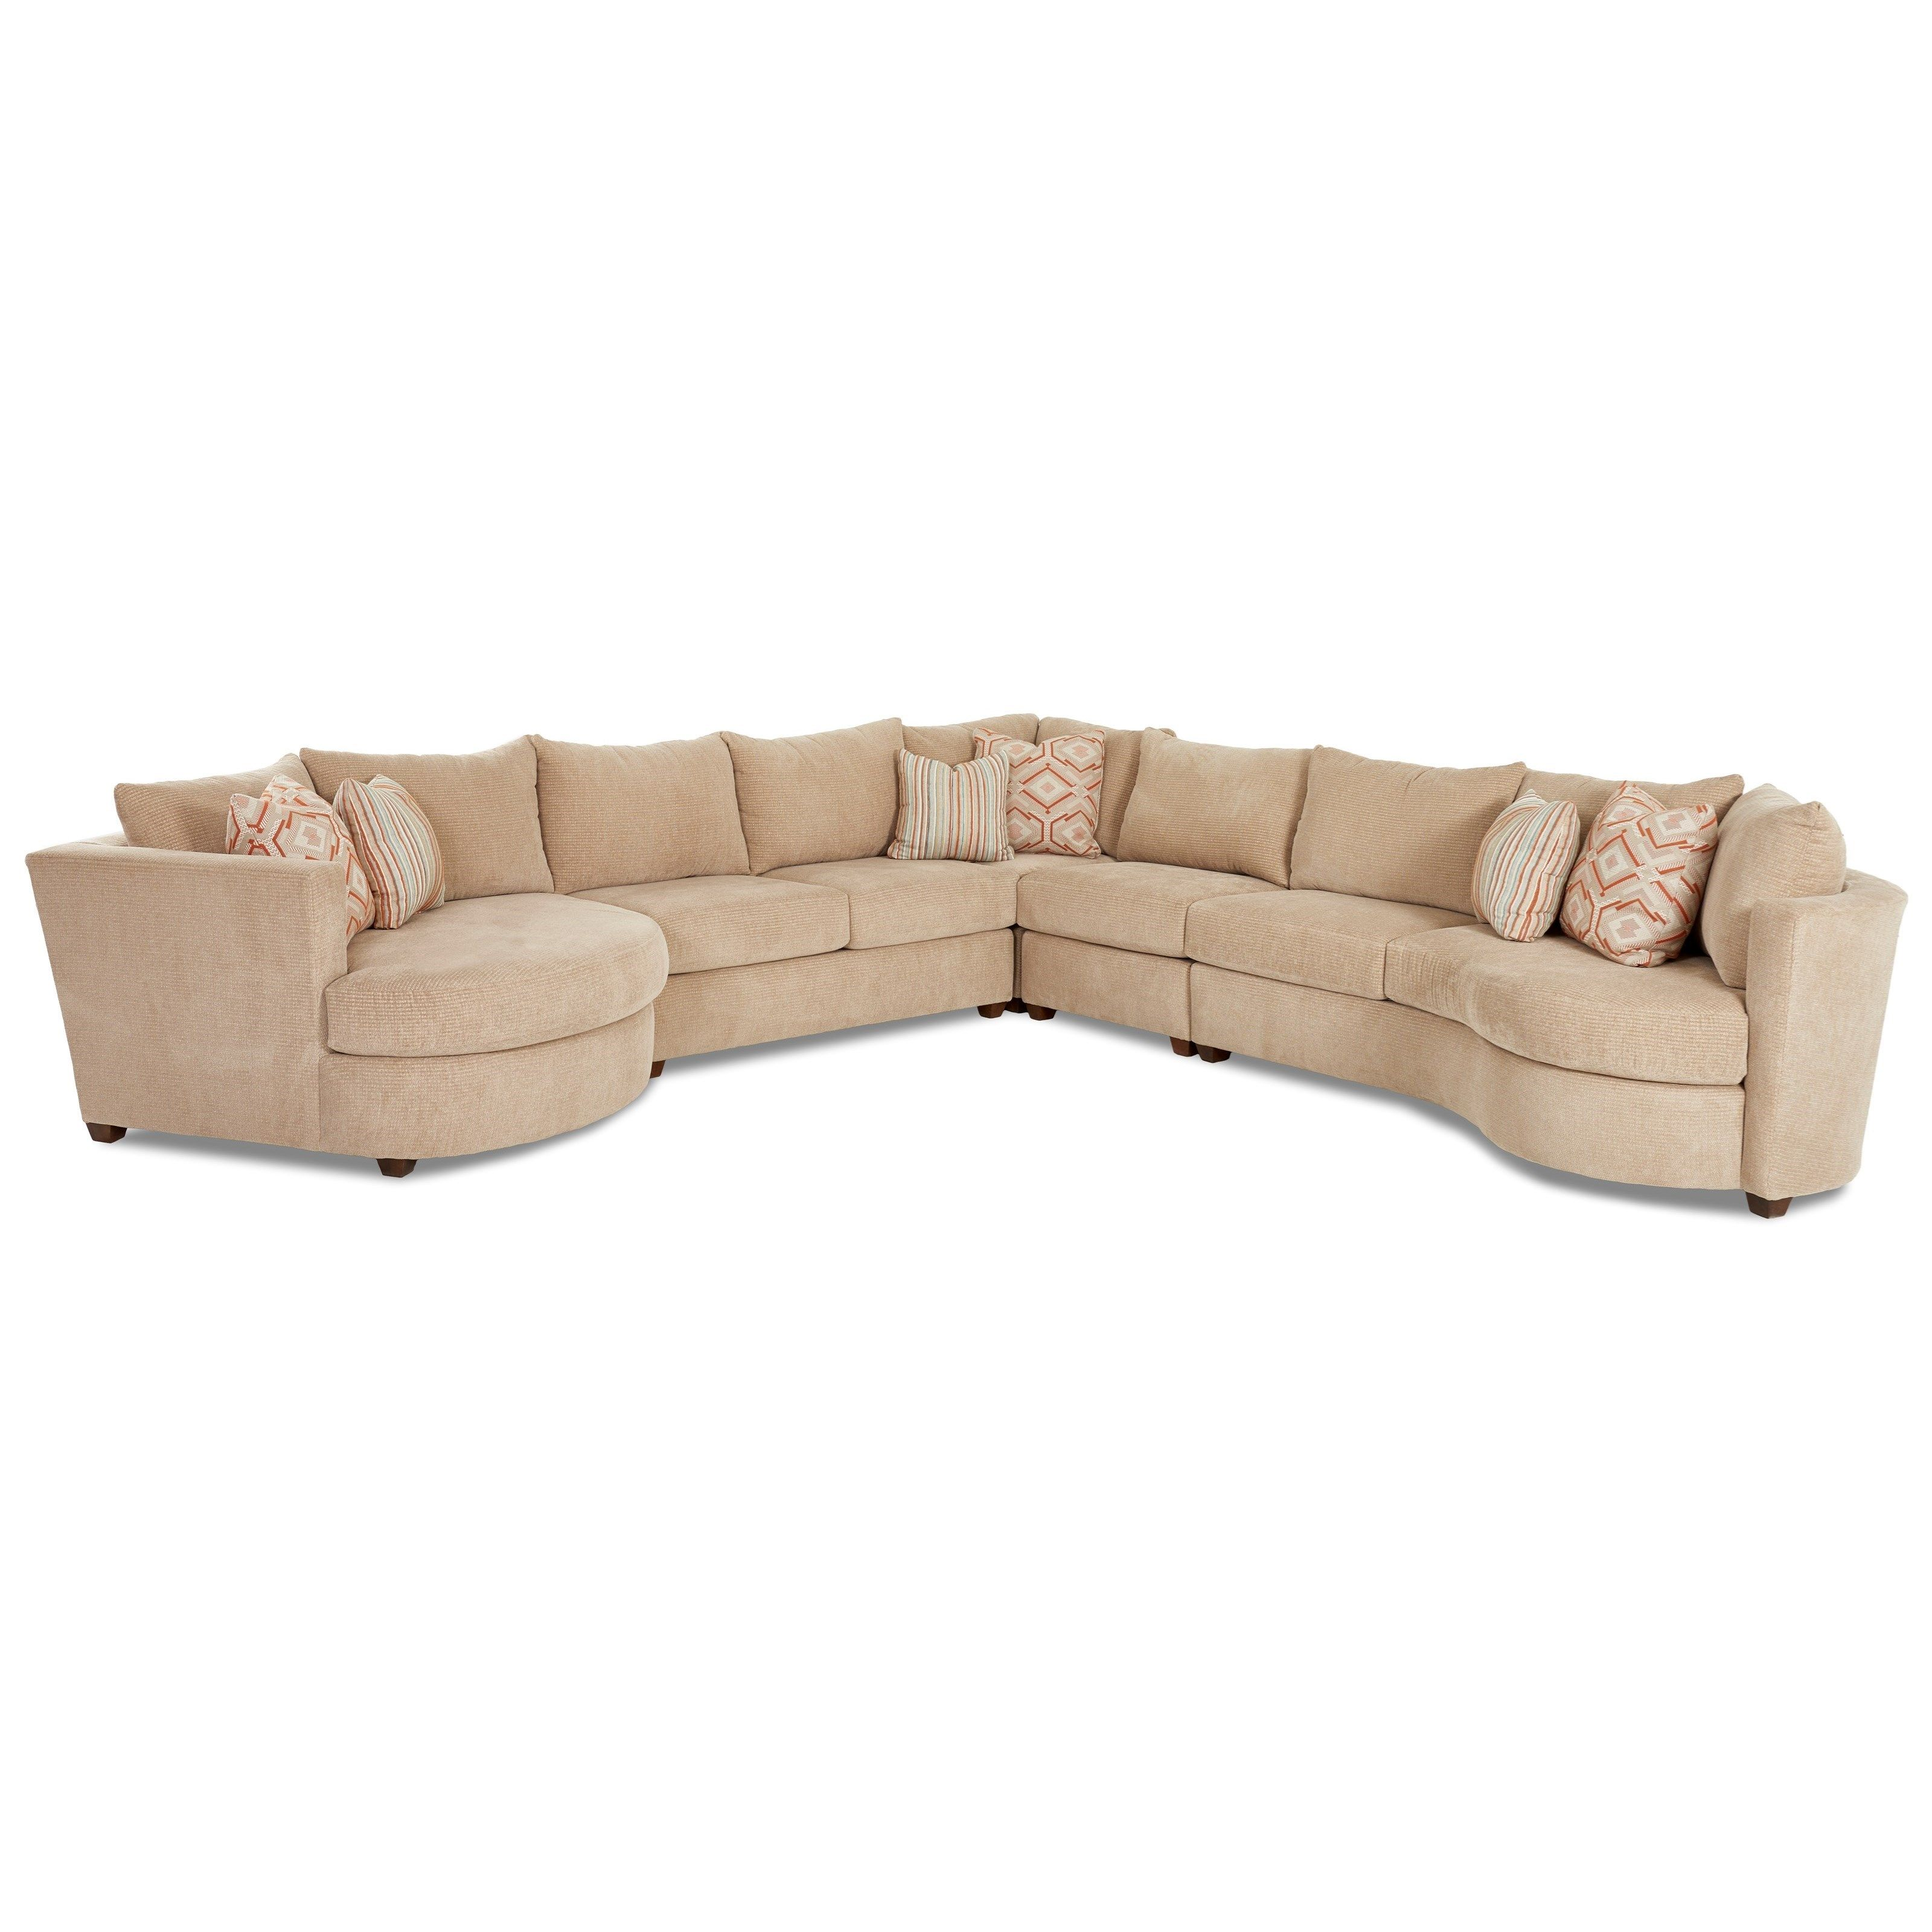 Klaussner LIA Contemporary 5 Piece Sectional With Left Arm Facing Cuddler   John  V Schultz Furniture